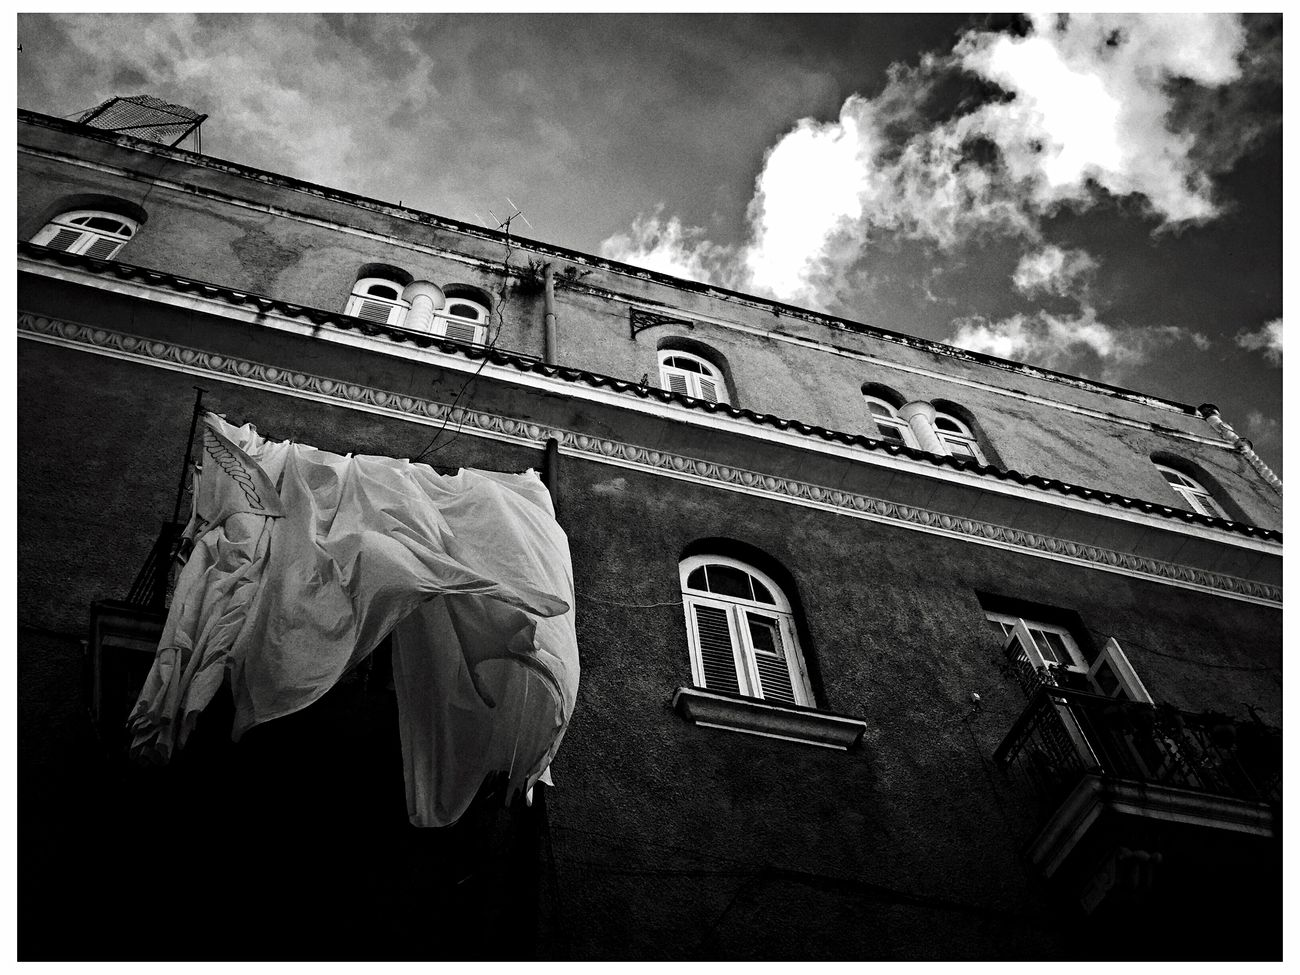 Sky Building Exterior Low Angle View Architecture Built Structure Outdoors No People Cloud - Sky Architecture City Blackandwhite Cuba Monochrome Havana La Habana EyeEm Best Shots - Black + White Streetphotography Traveling EyeEm Best Edits